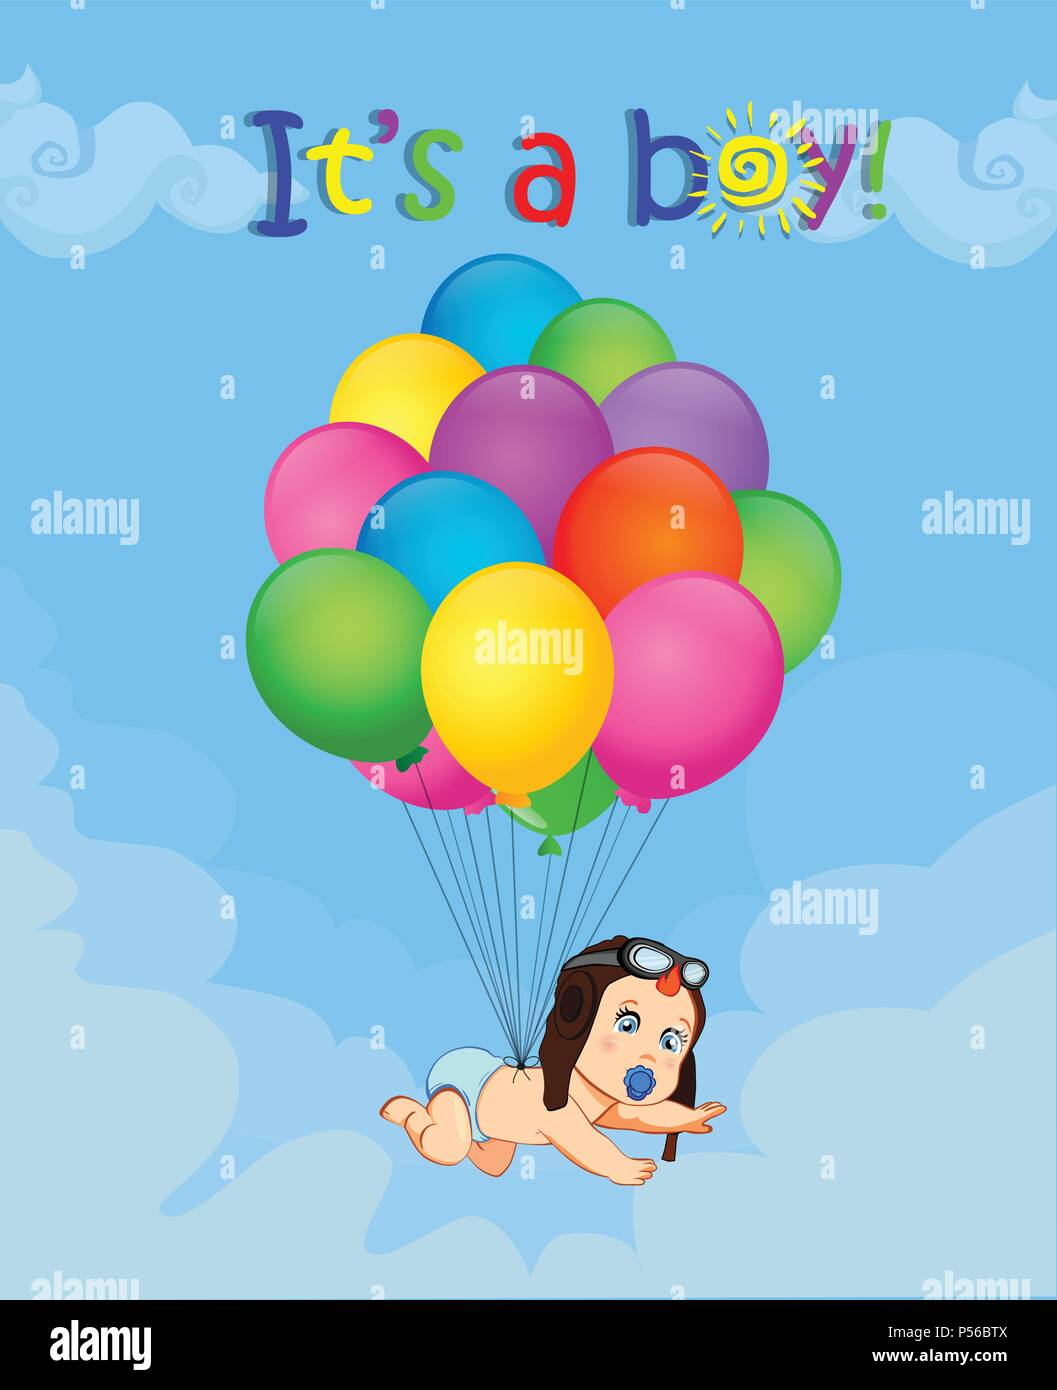 641cd65a415 Its a boy cartoon vector illustration with cute baby in pilot hat falling  down on bunch